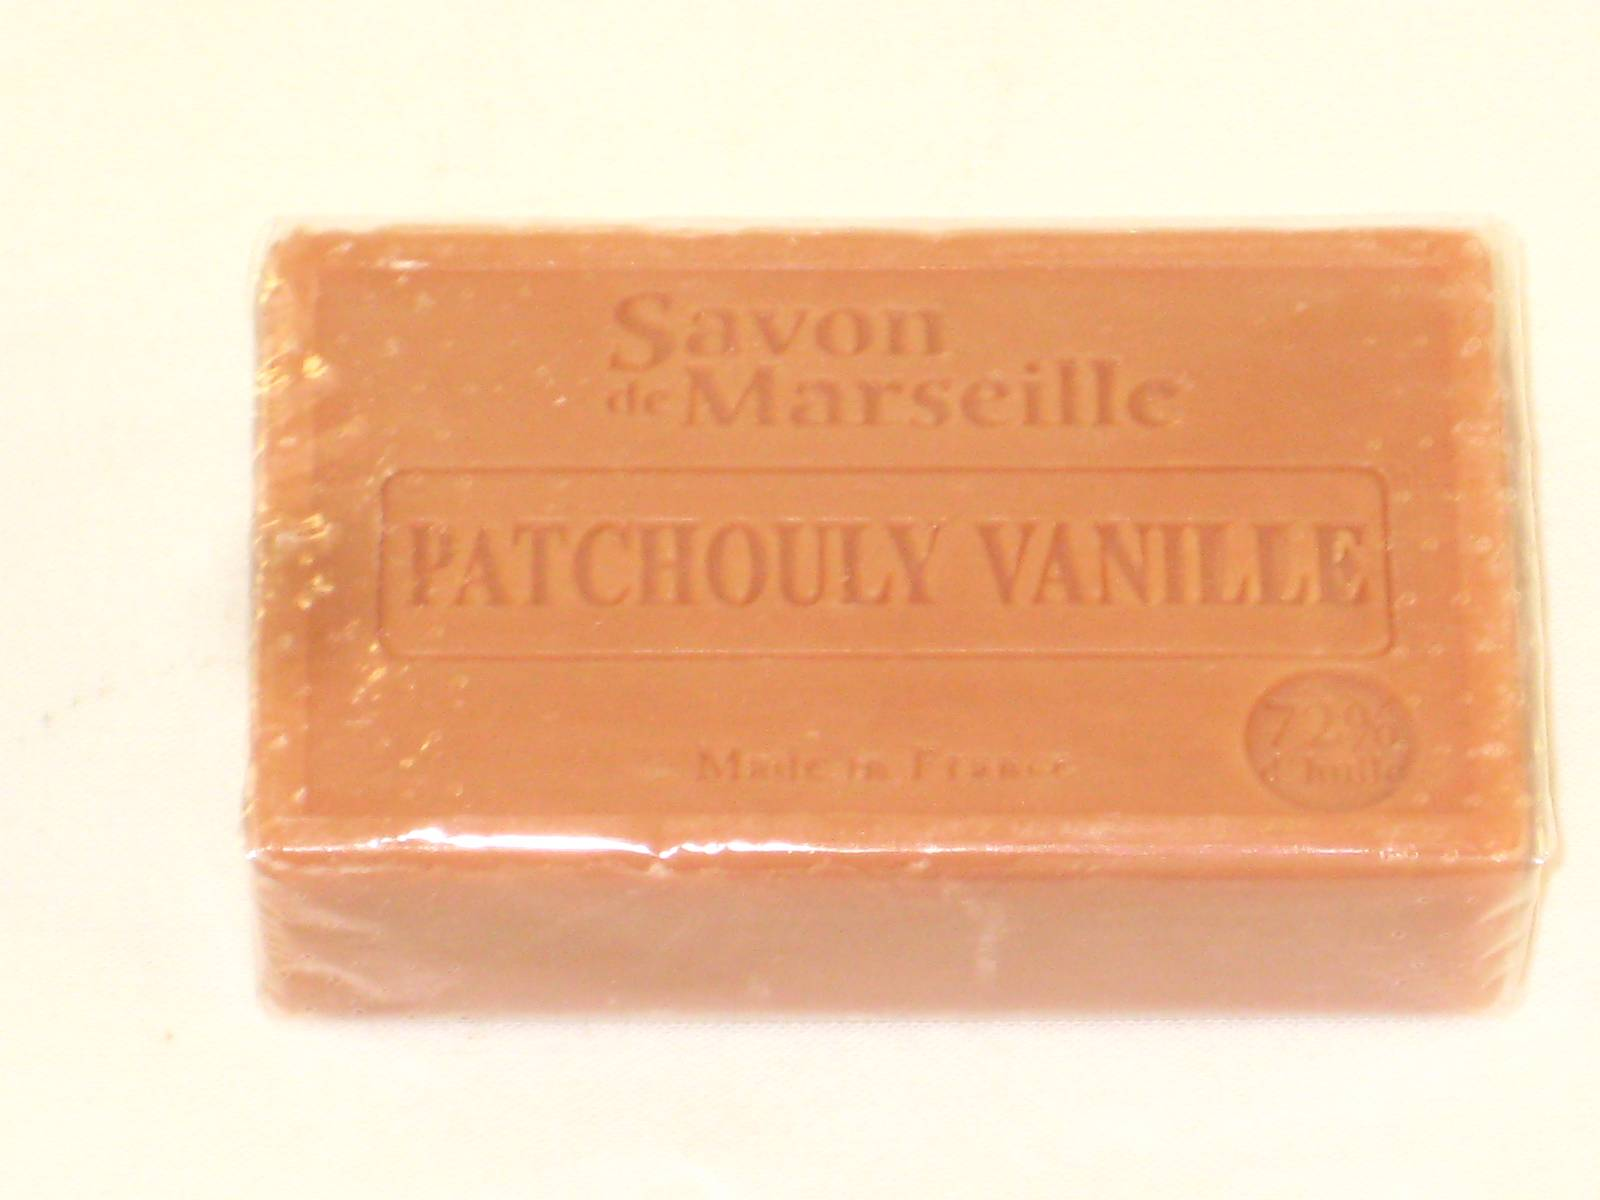 savon de marseille cellophan patchouli vanille 100g tee shirts tasses objets humour. Black Bedroom Furniture Sets. Home Design Ideas